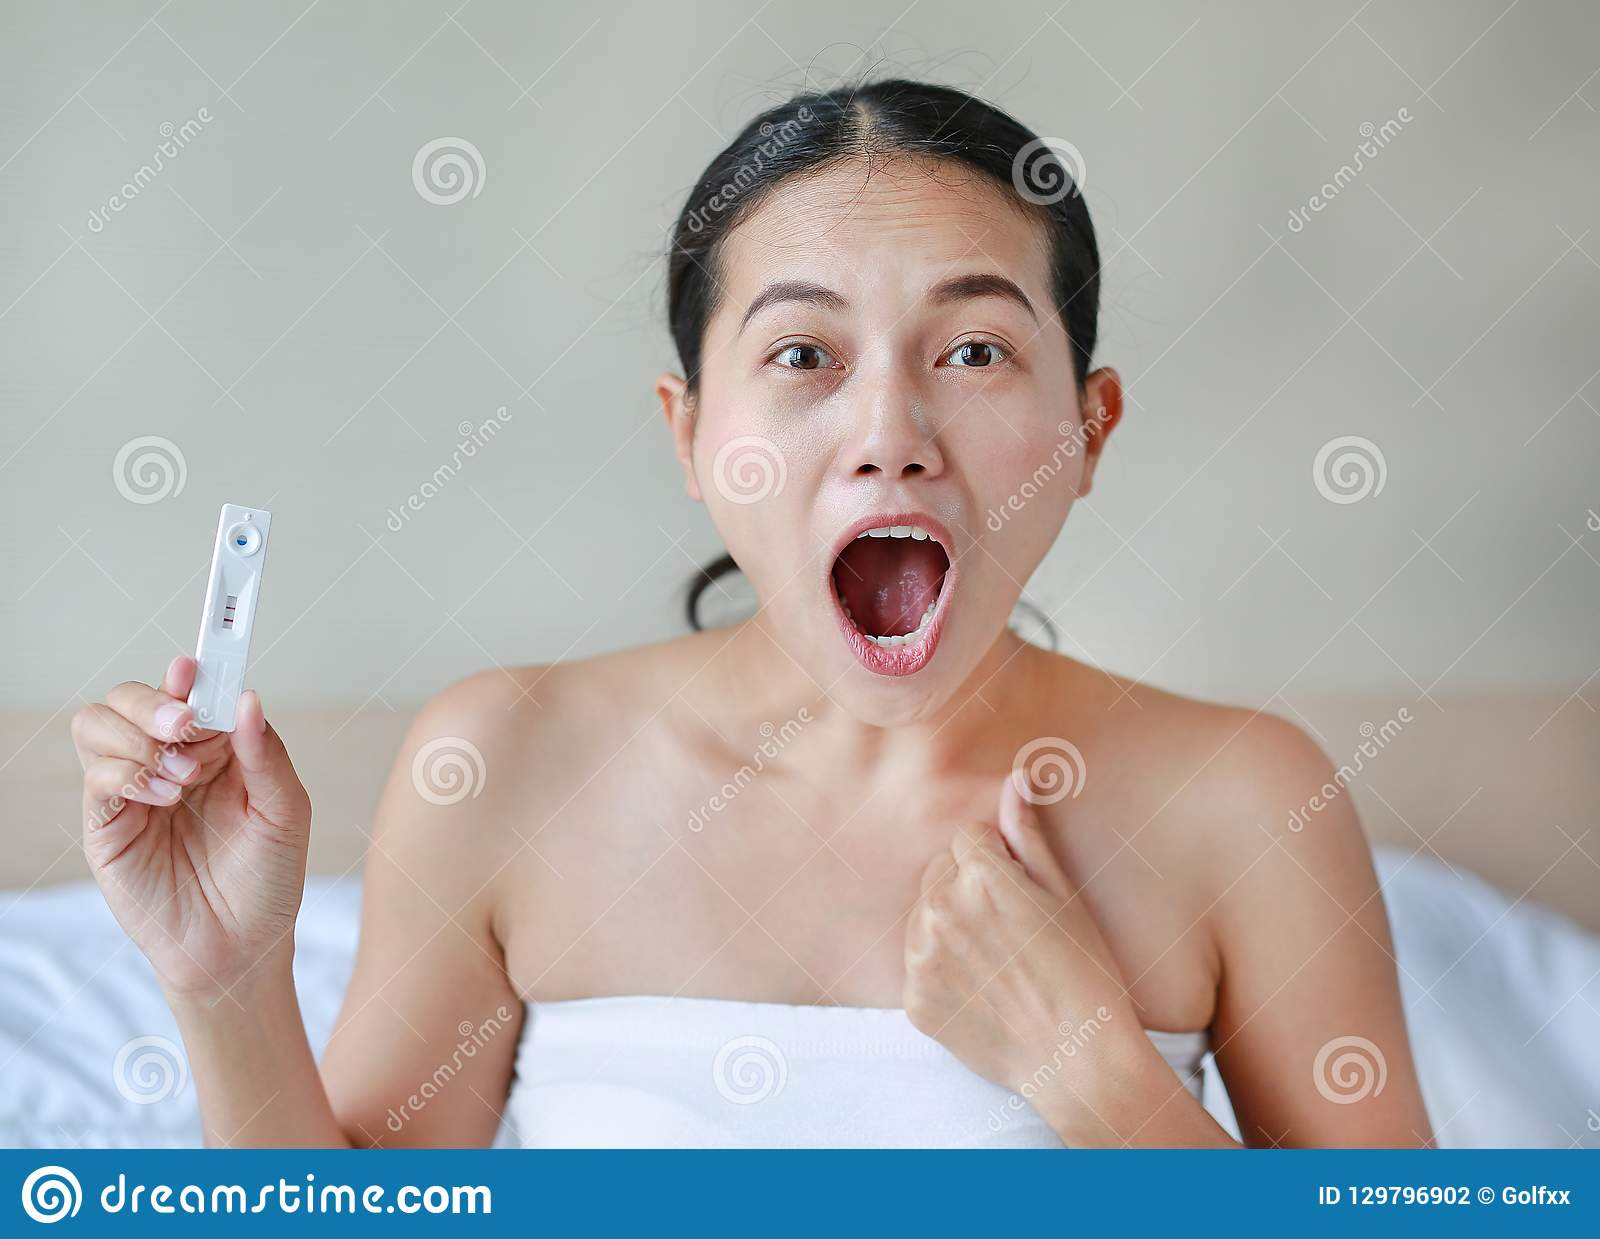 Excited young woman holding positive pregnancy test